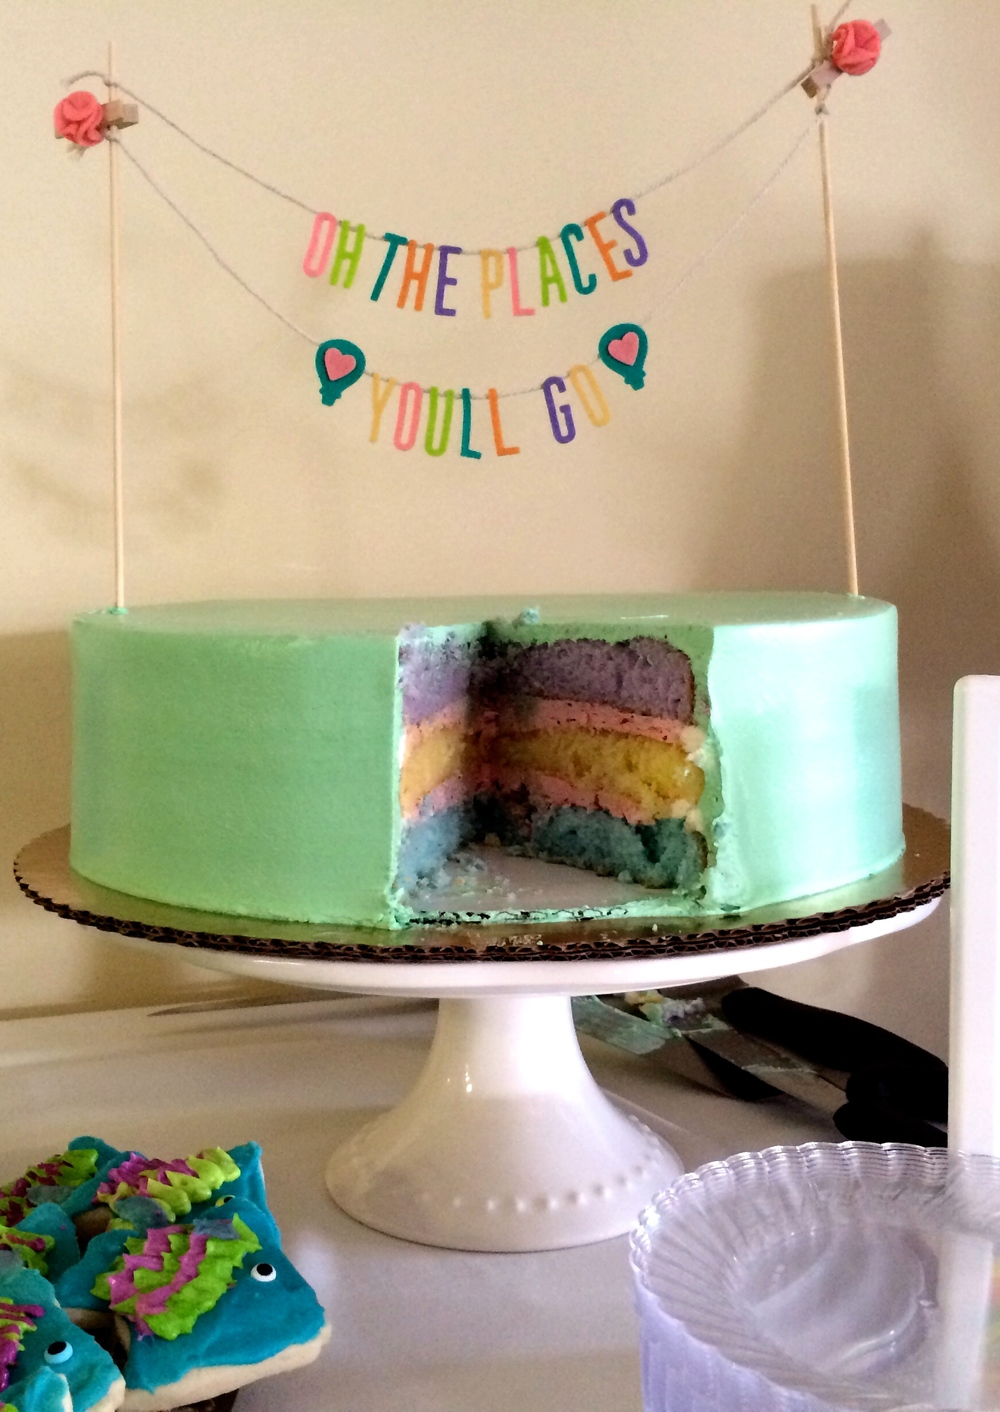 Oh, the Places You'll Go themed cake